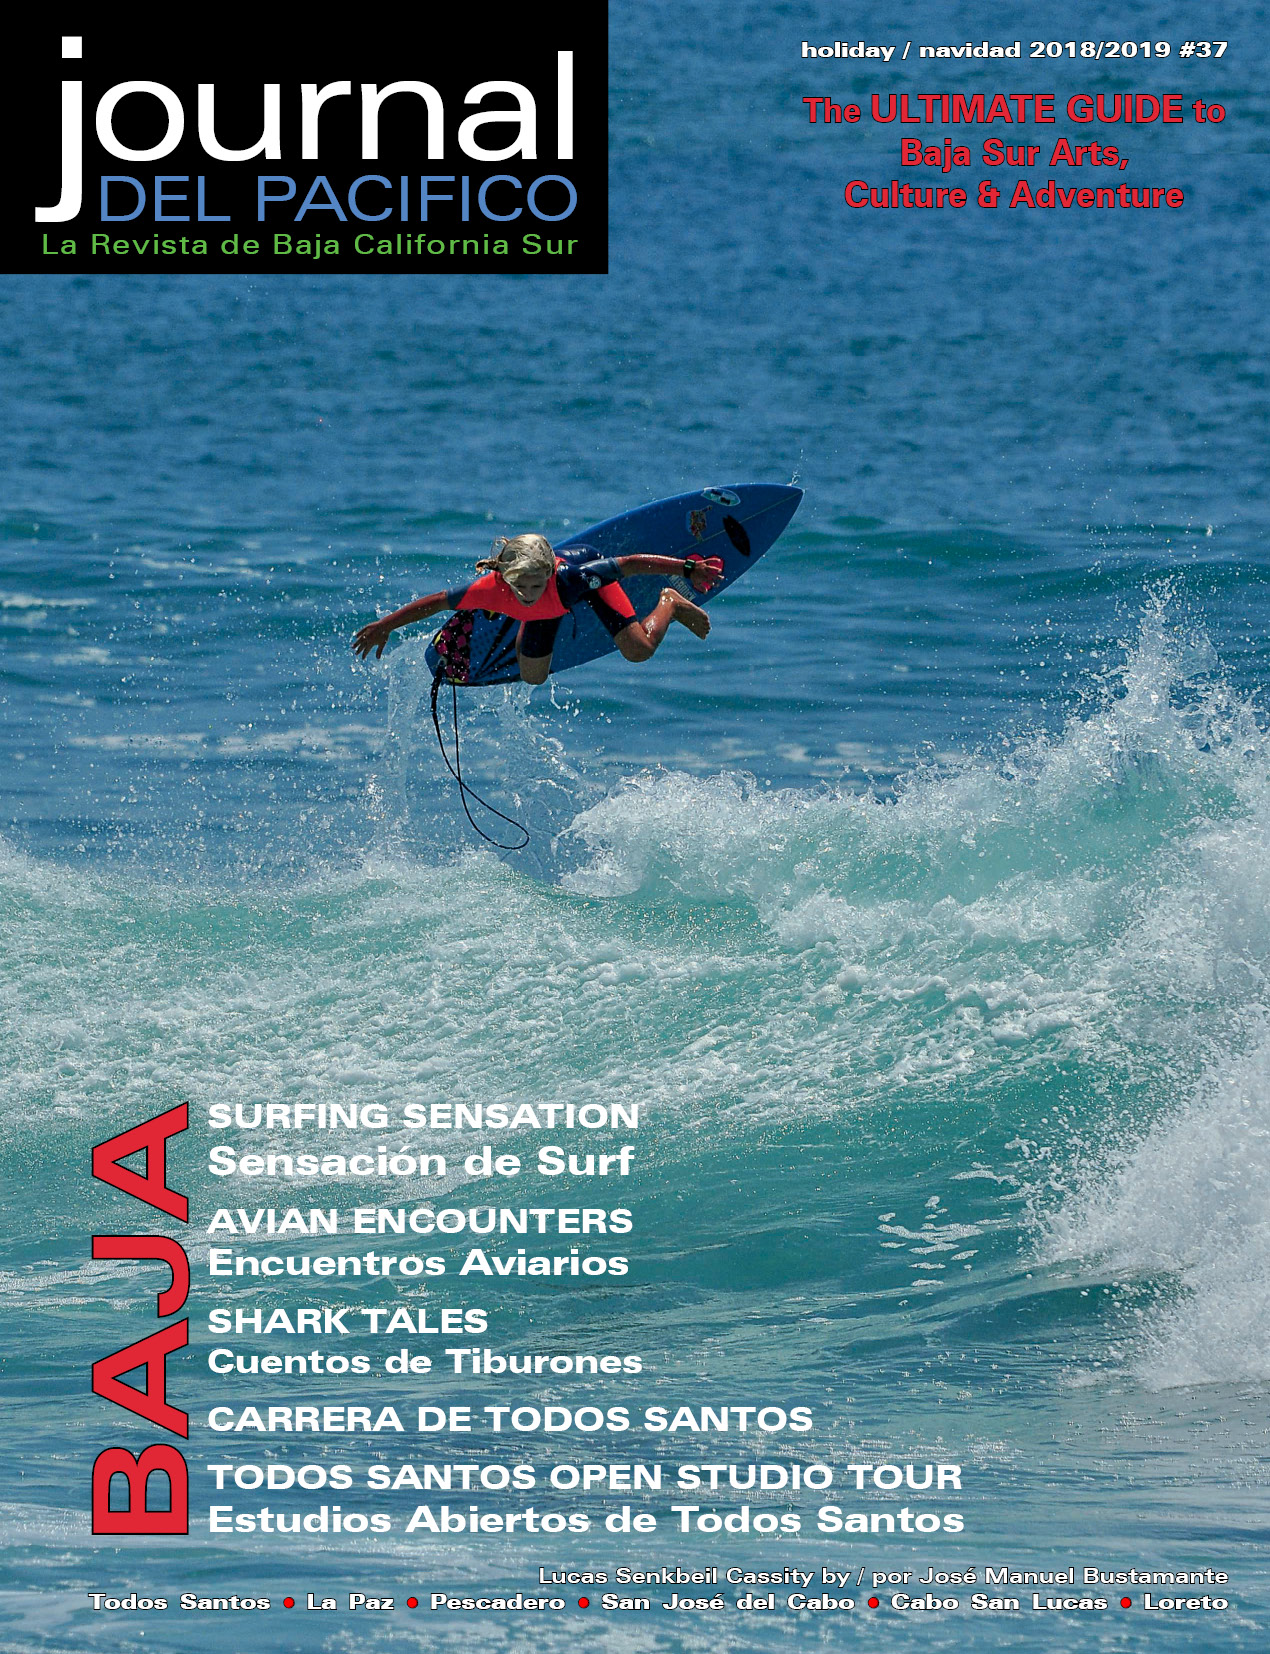 Holiday/Navidad 2018/2019 Issue of Journal del Pacifico